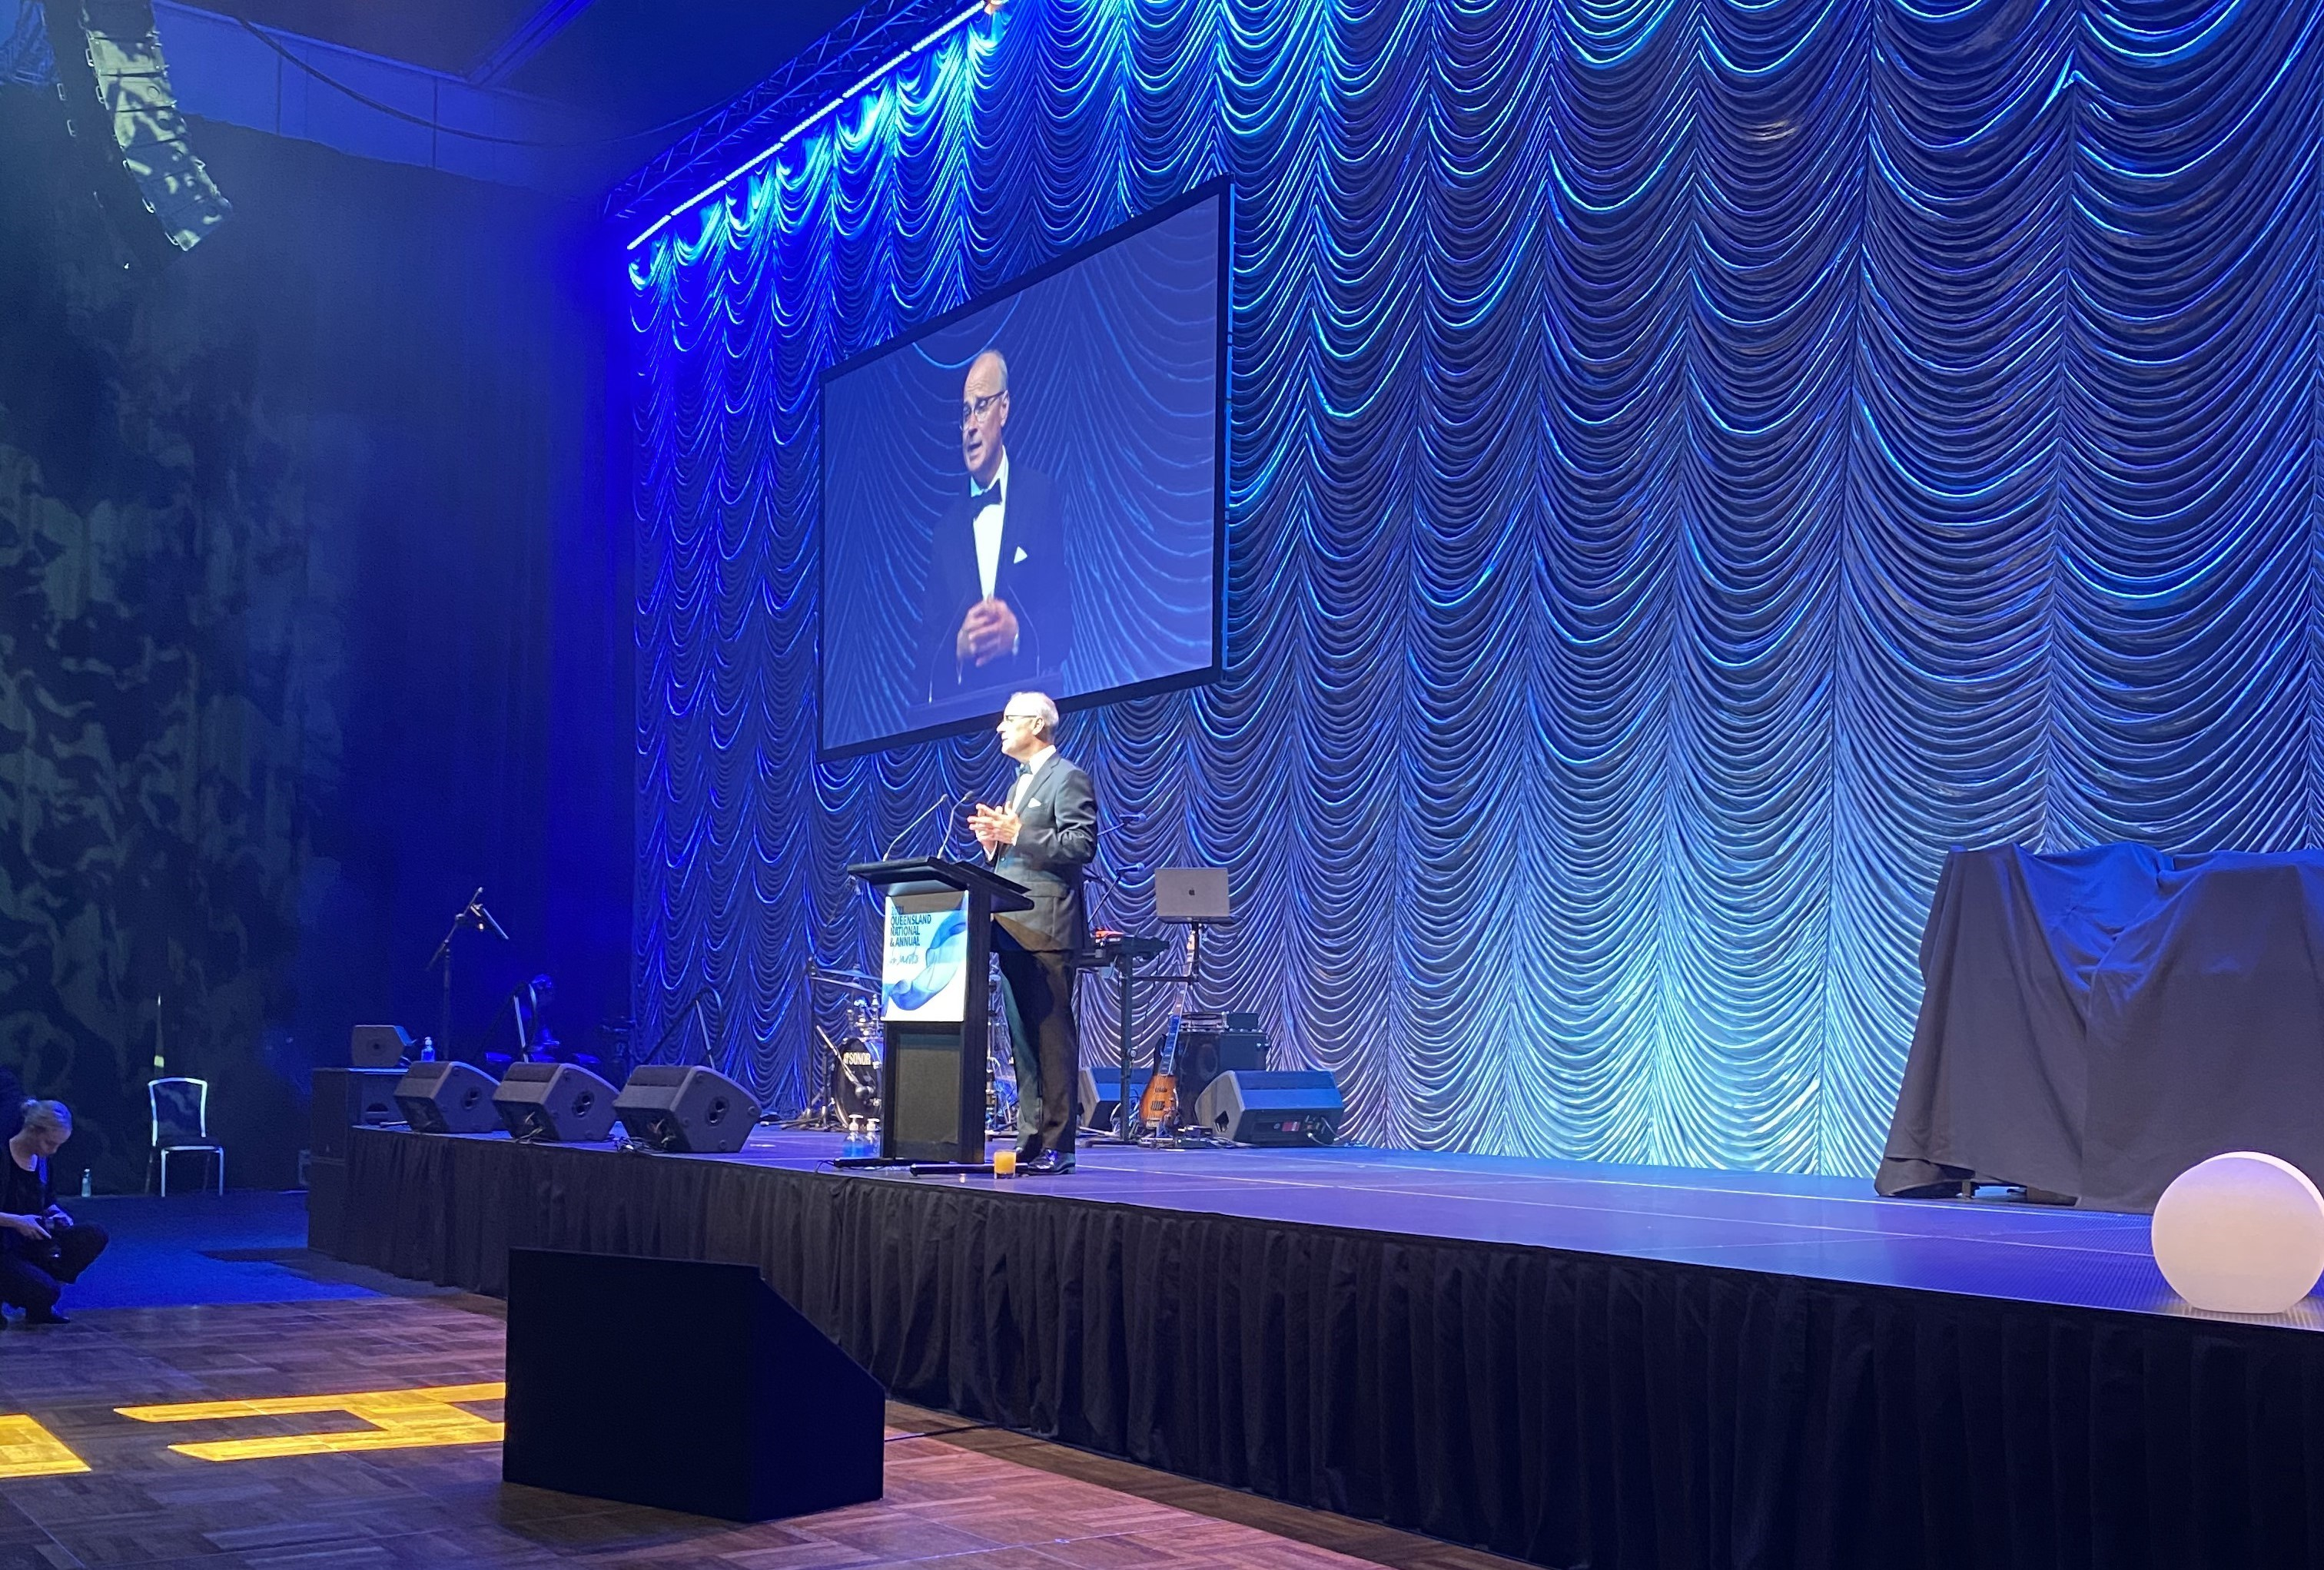 Harcourts Announces Number Two Network Position at Industry-First Event